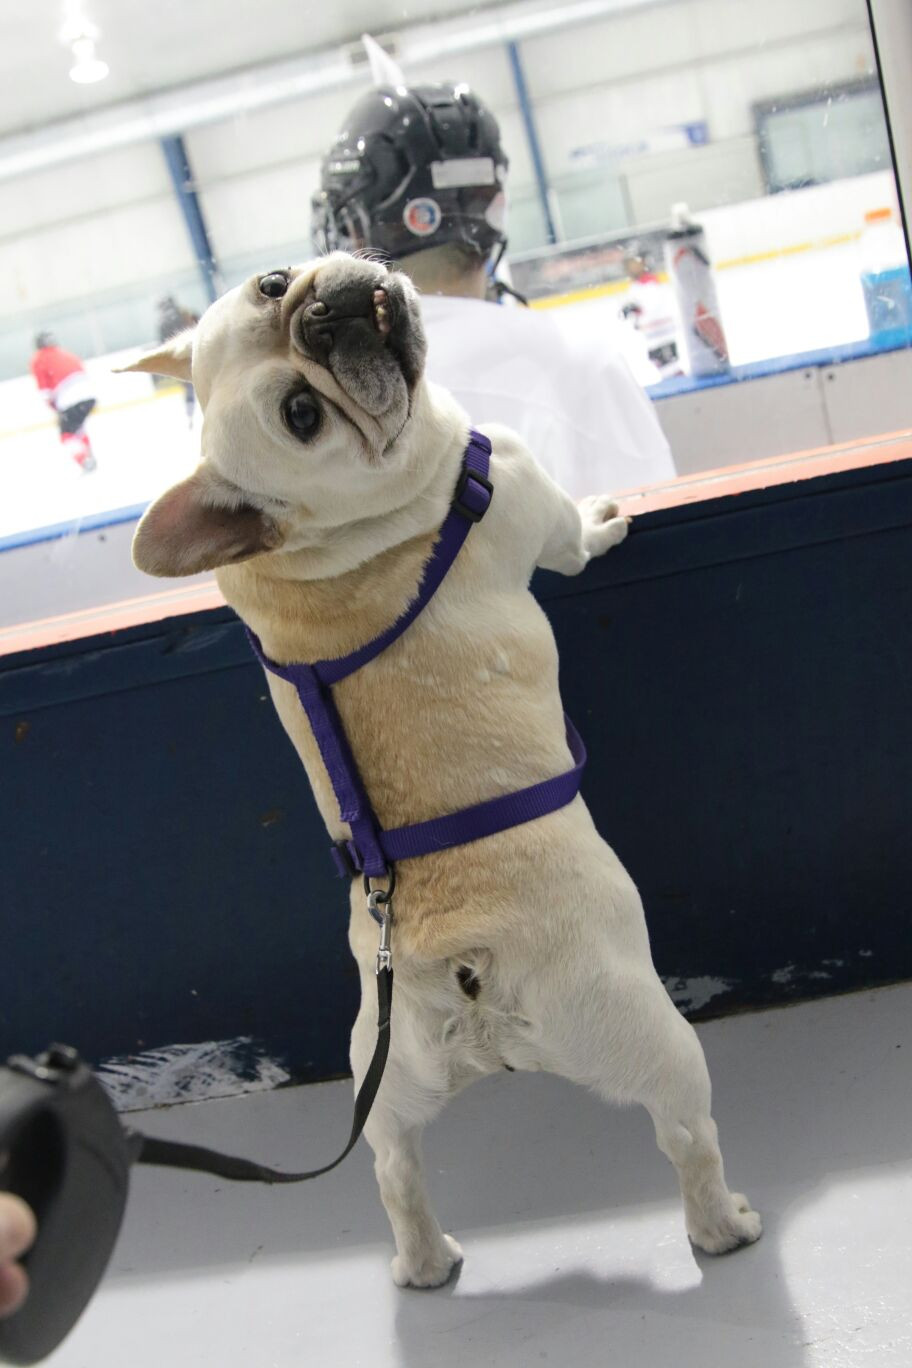 Mona, our french bulldog landscaper, at local hockey arena cheering Daddy while he plays hockey. She's looking back at camera standing on her hind legs with front paws perched up on boards.